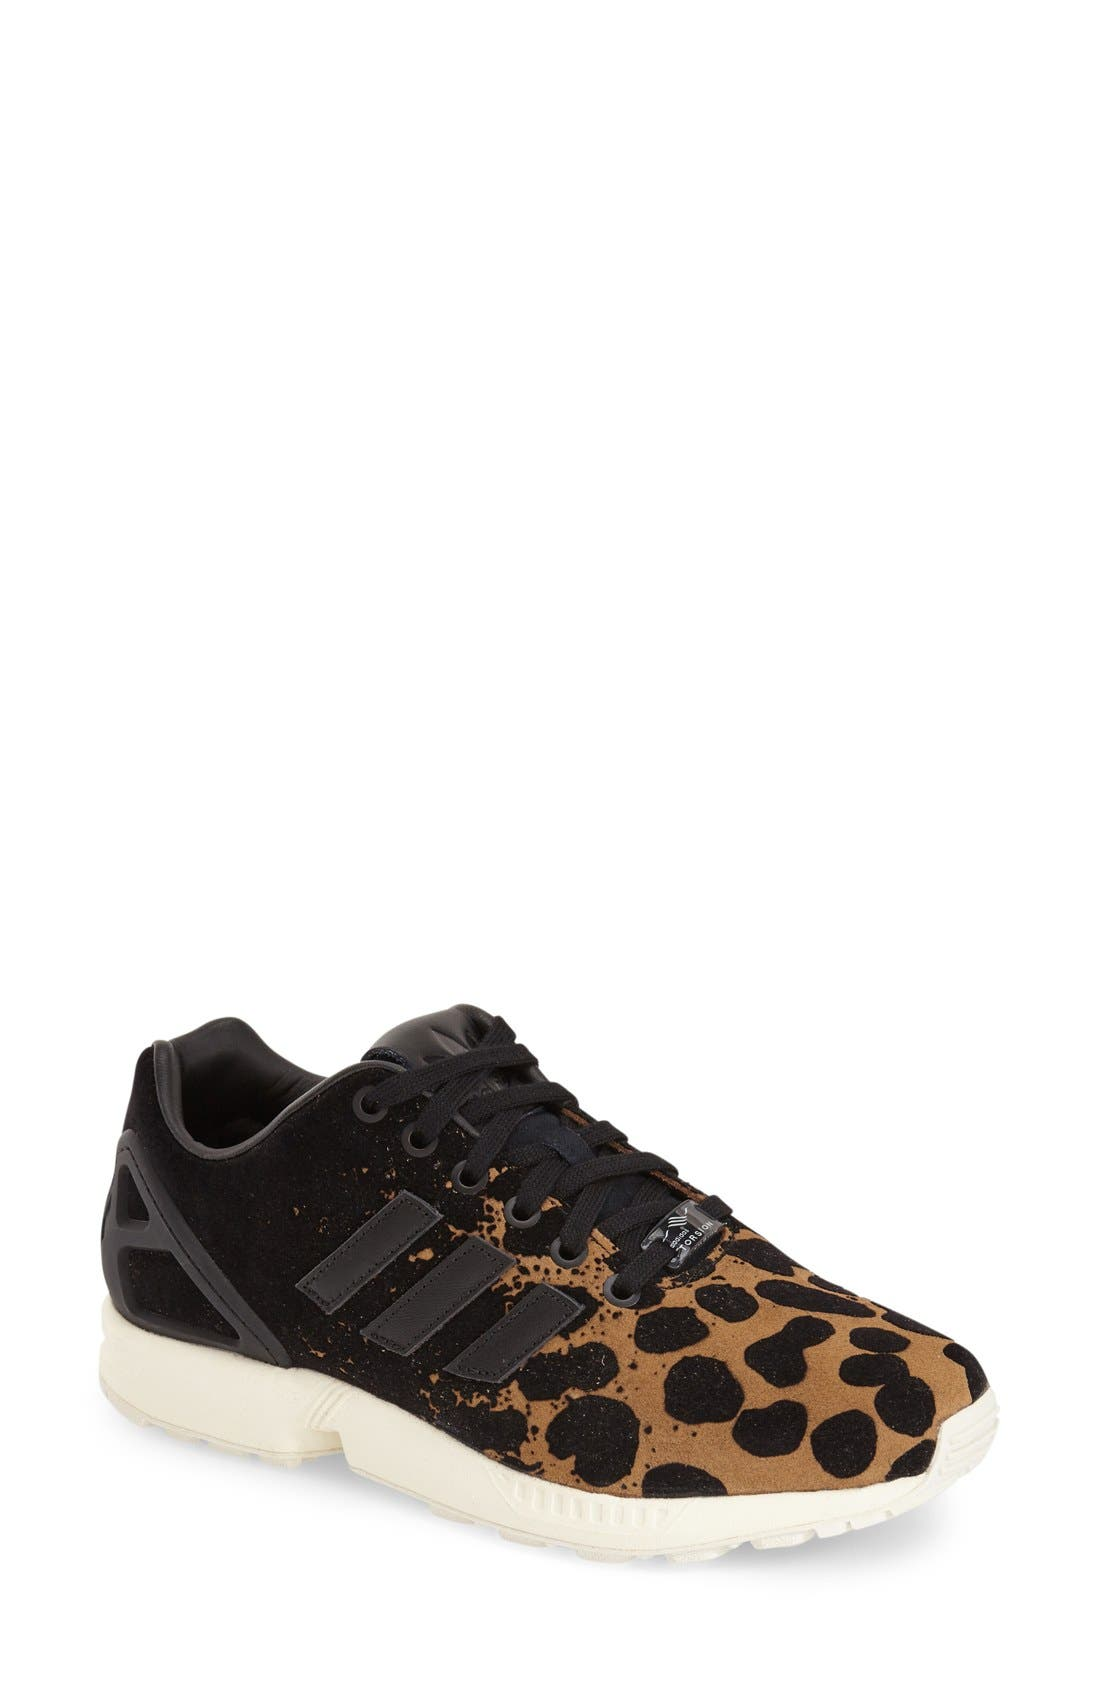 Alternate Image 1 Selected - adidas 'ZX Flux' Sneaker (Women)